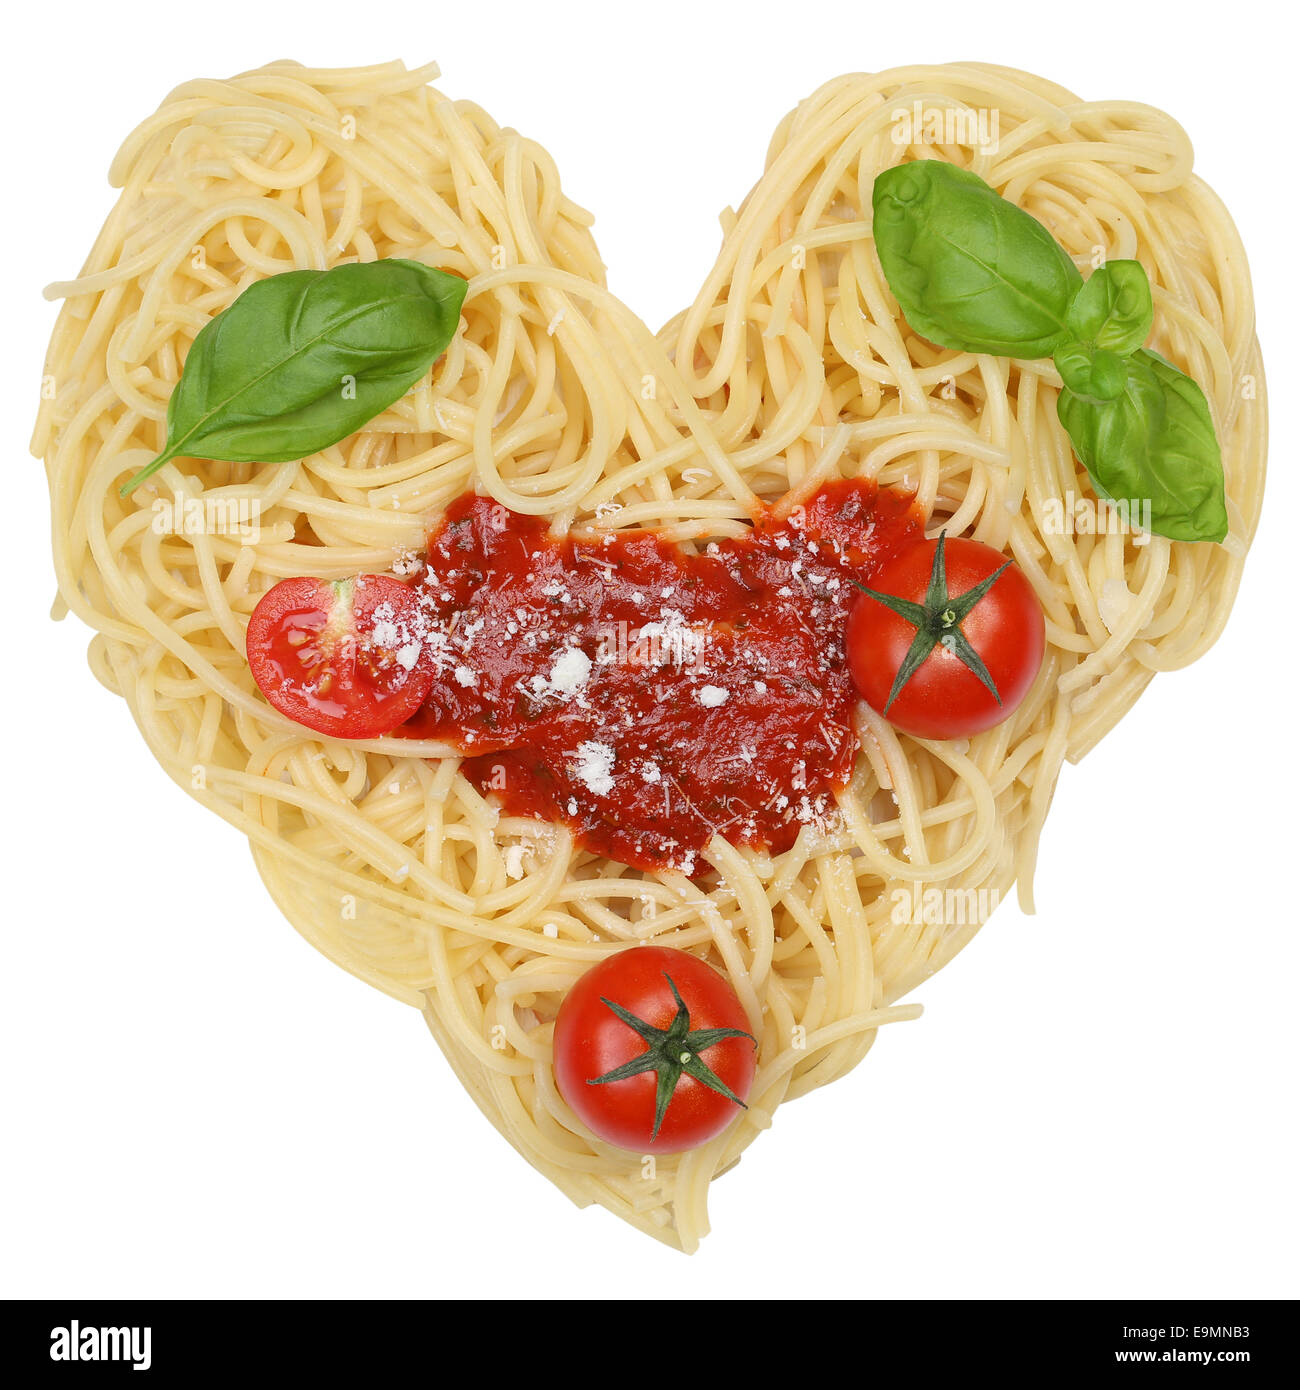 Spaghetti noodles pasta with heart isolated on a white background - Stock Image